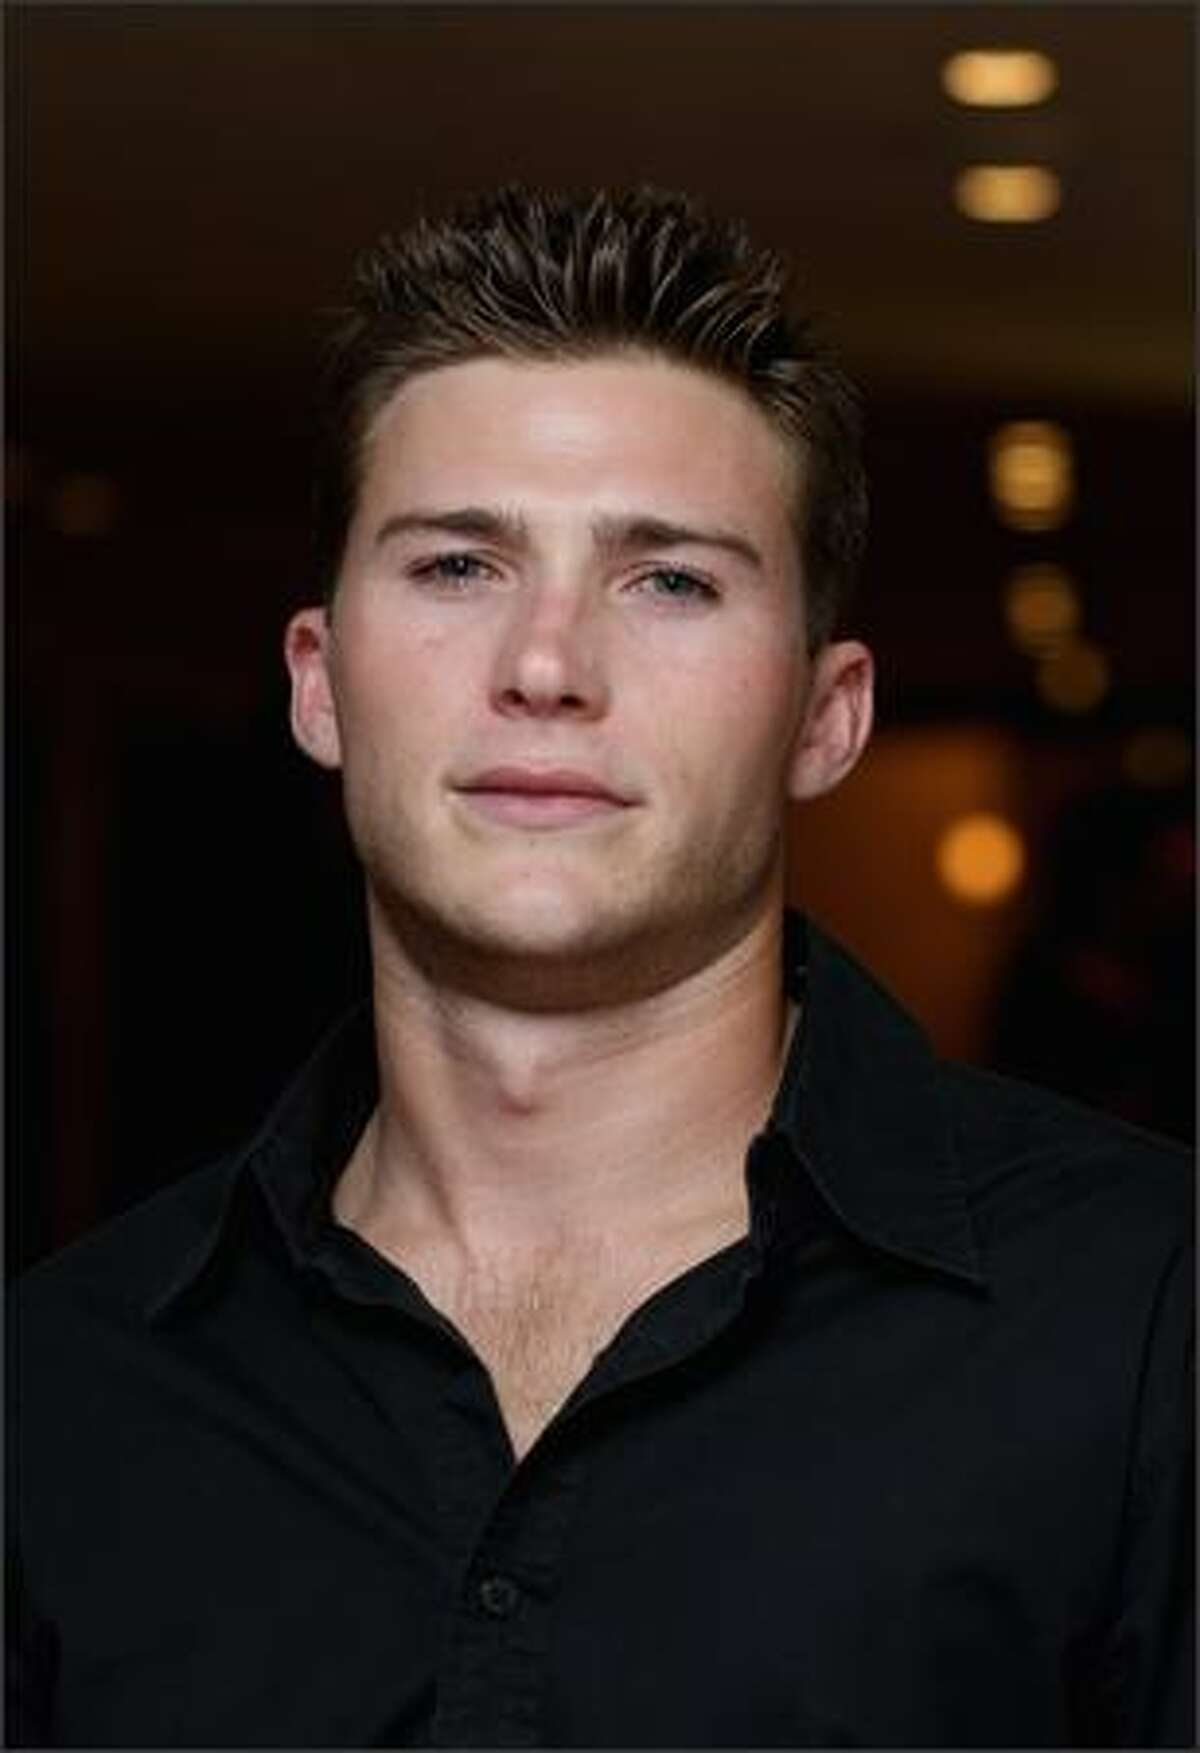 Scott Eastwood arrives at the Grand Opening of the new One&Only Cape Town resort in Cape Town, South Africa.